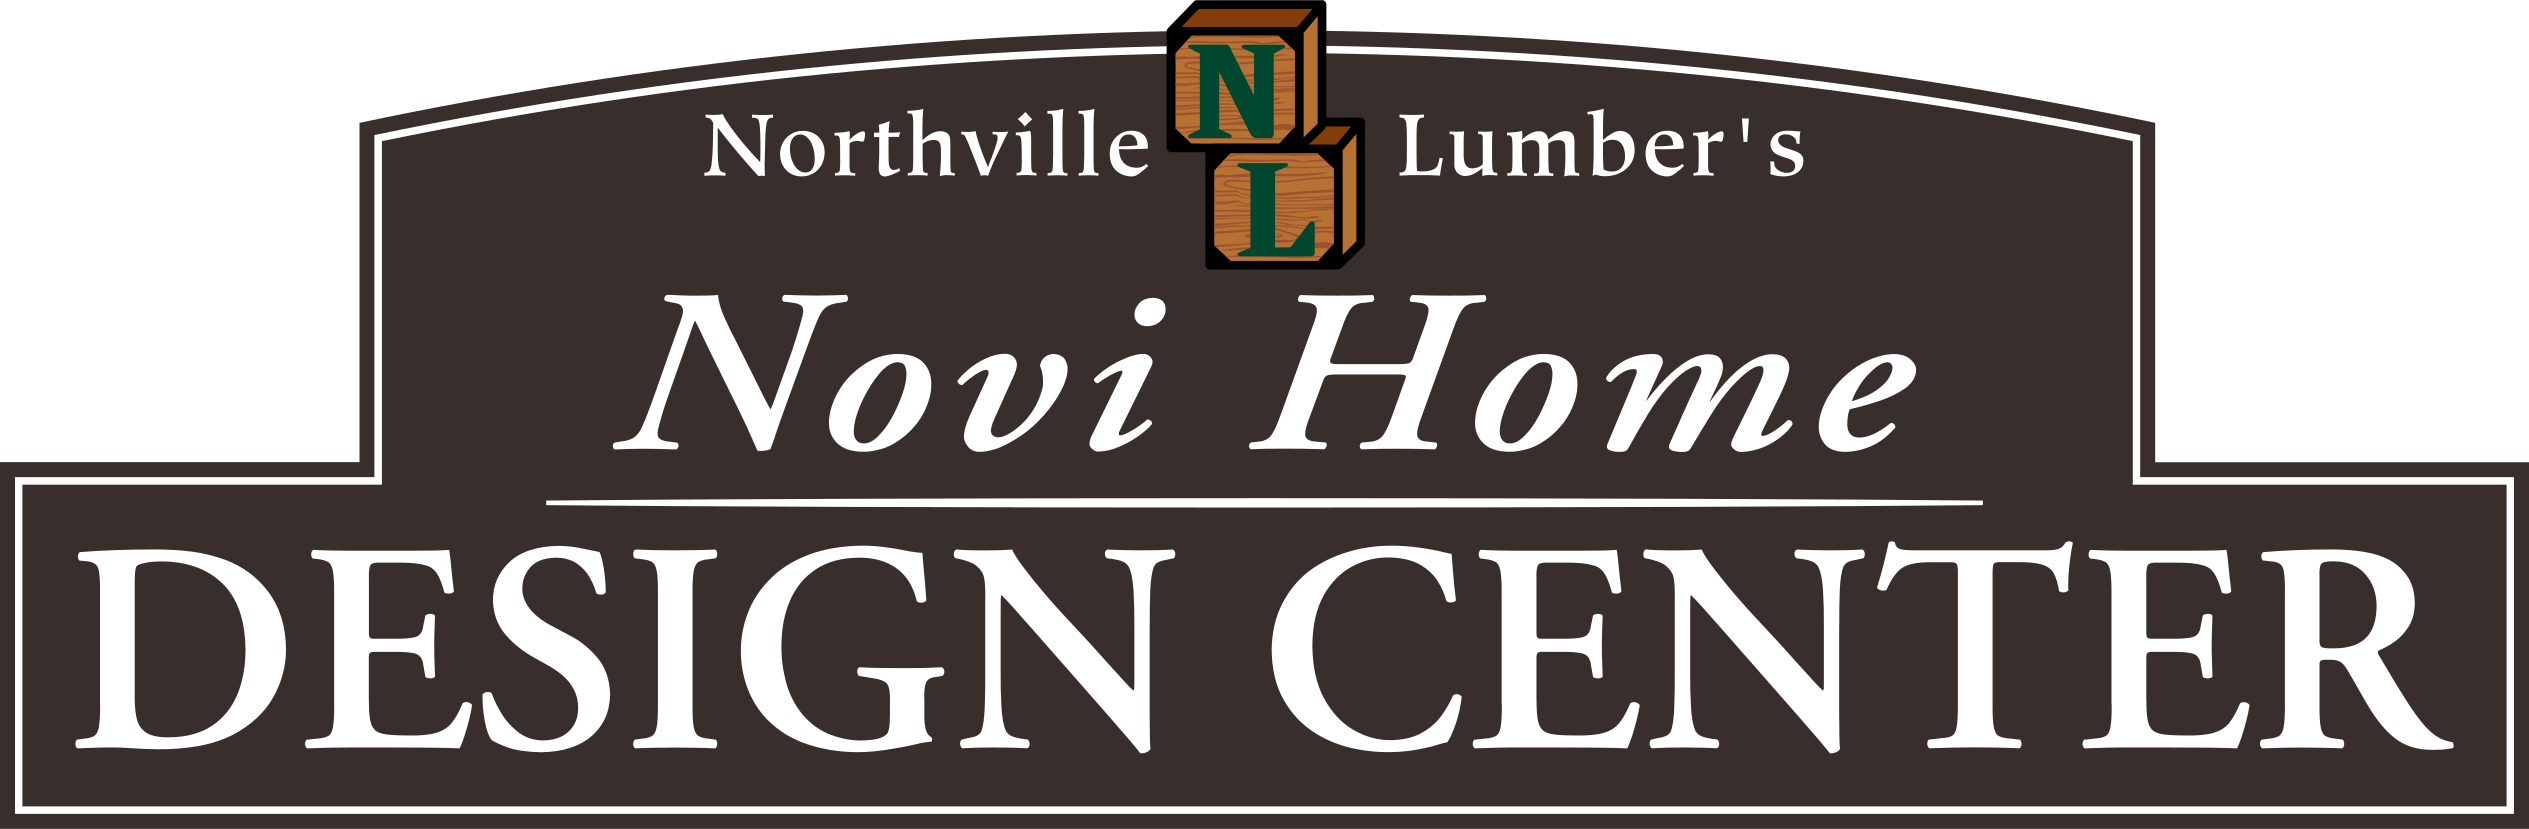 Northville Lumber's Novi Home Design Center Logo